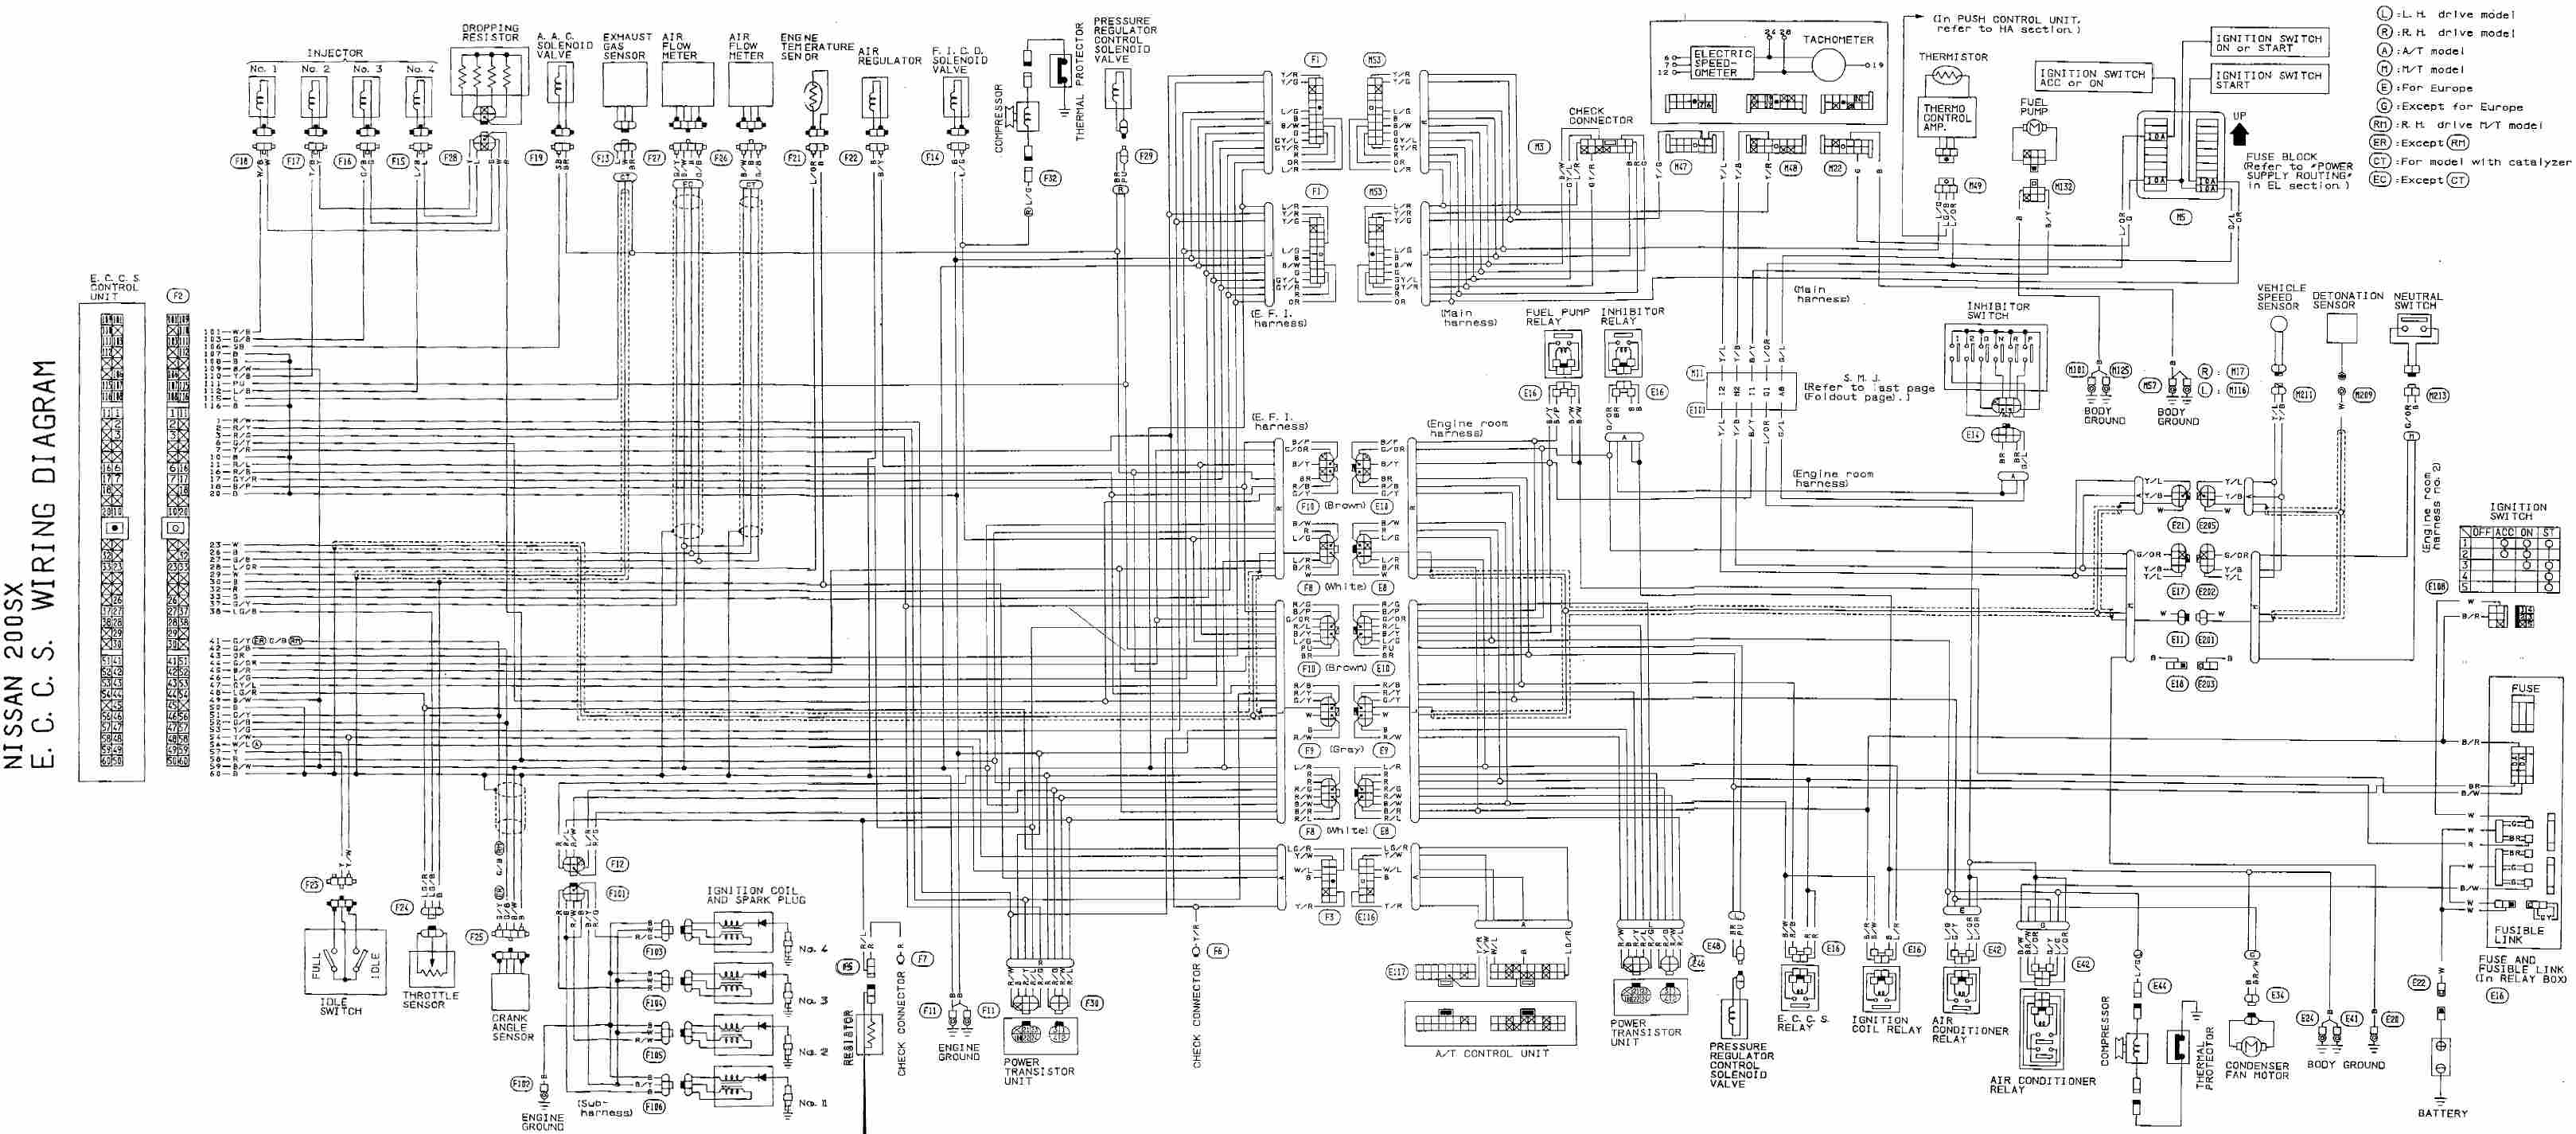 complete eccs wiring diagram of nissan 200x?t\=1508500919 300zx wiring diagram 300zx engine wiring diagram \u2022 wiring diagrams 91 240sx wiring diagram at mifinder.co